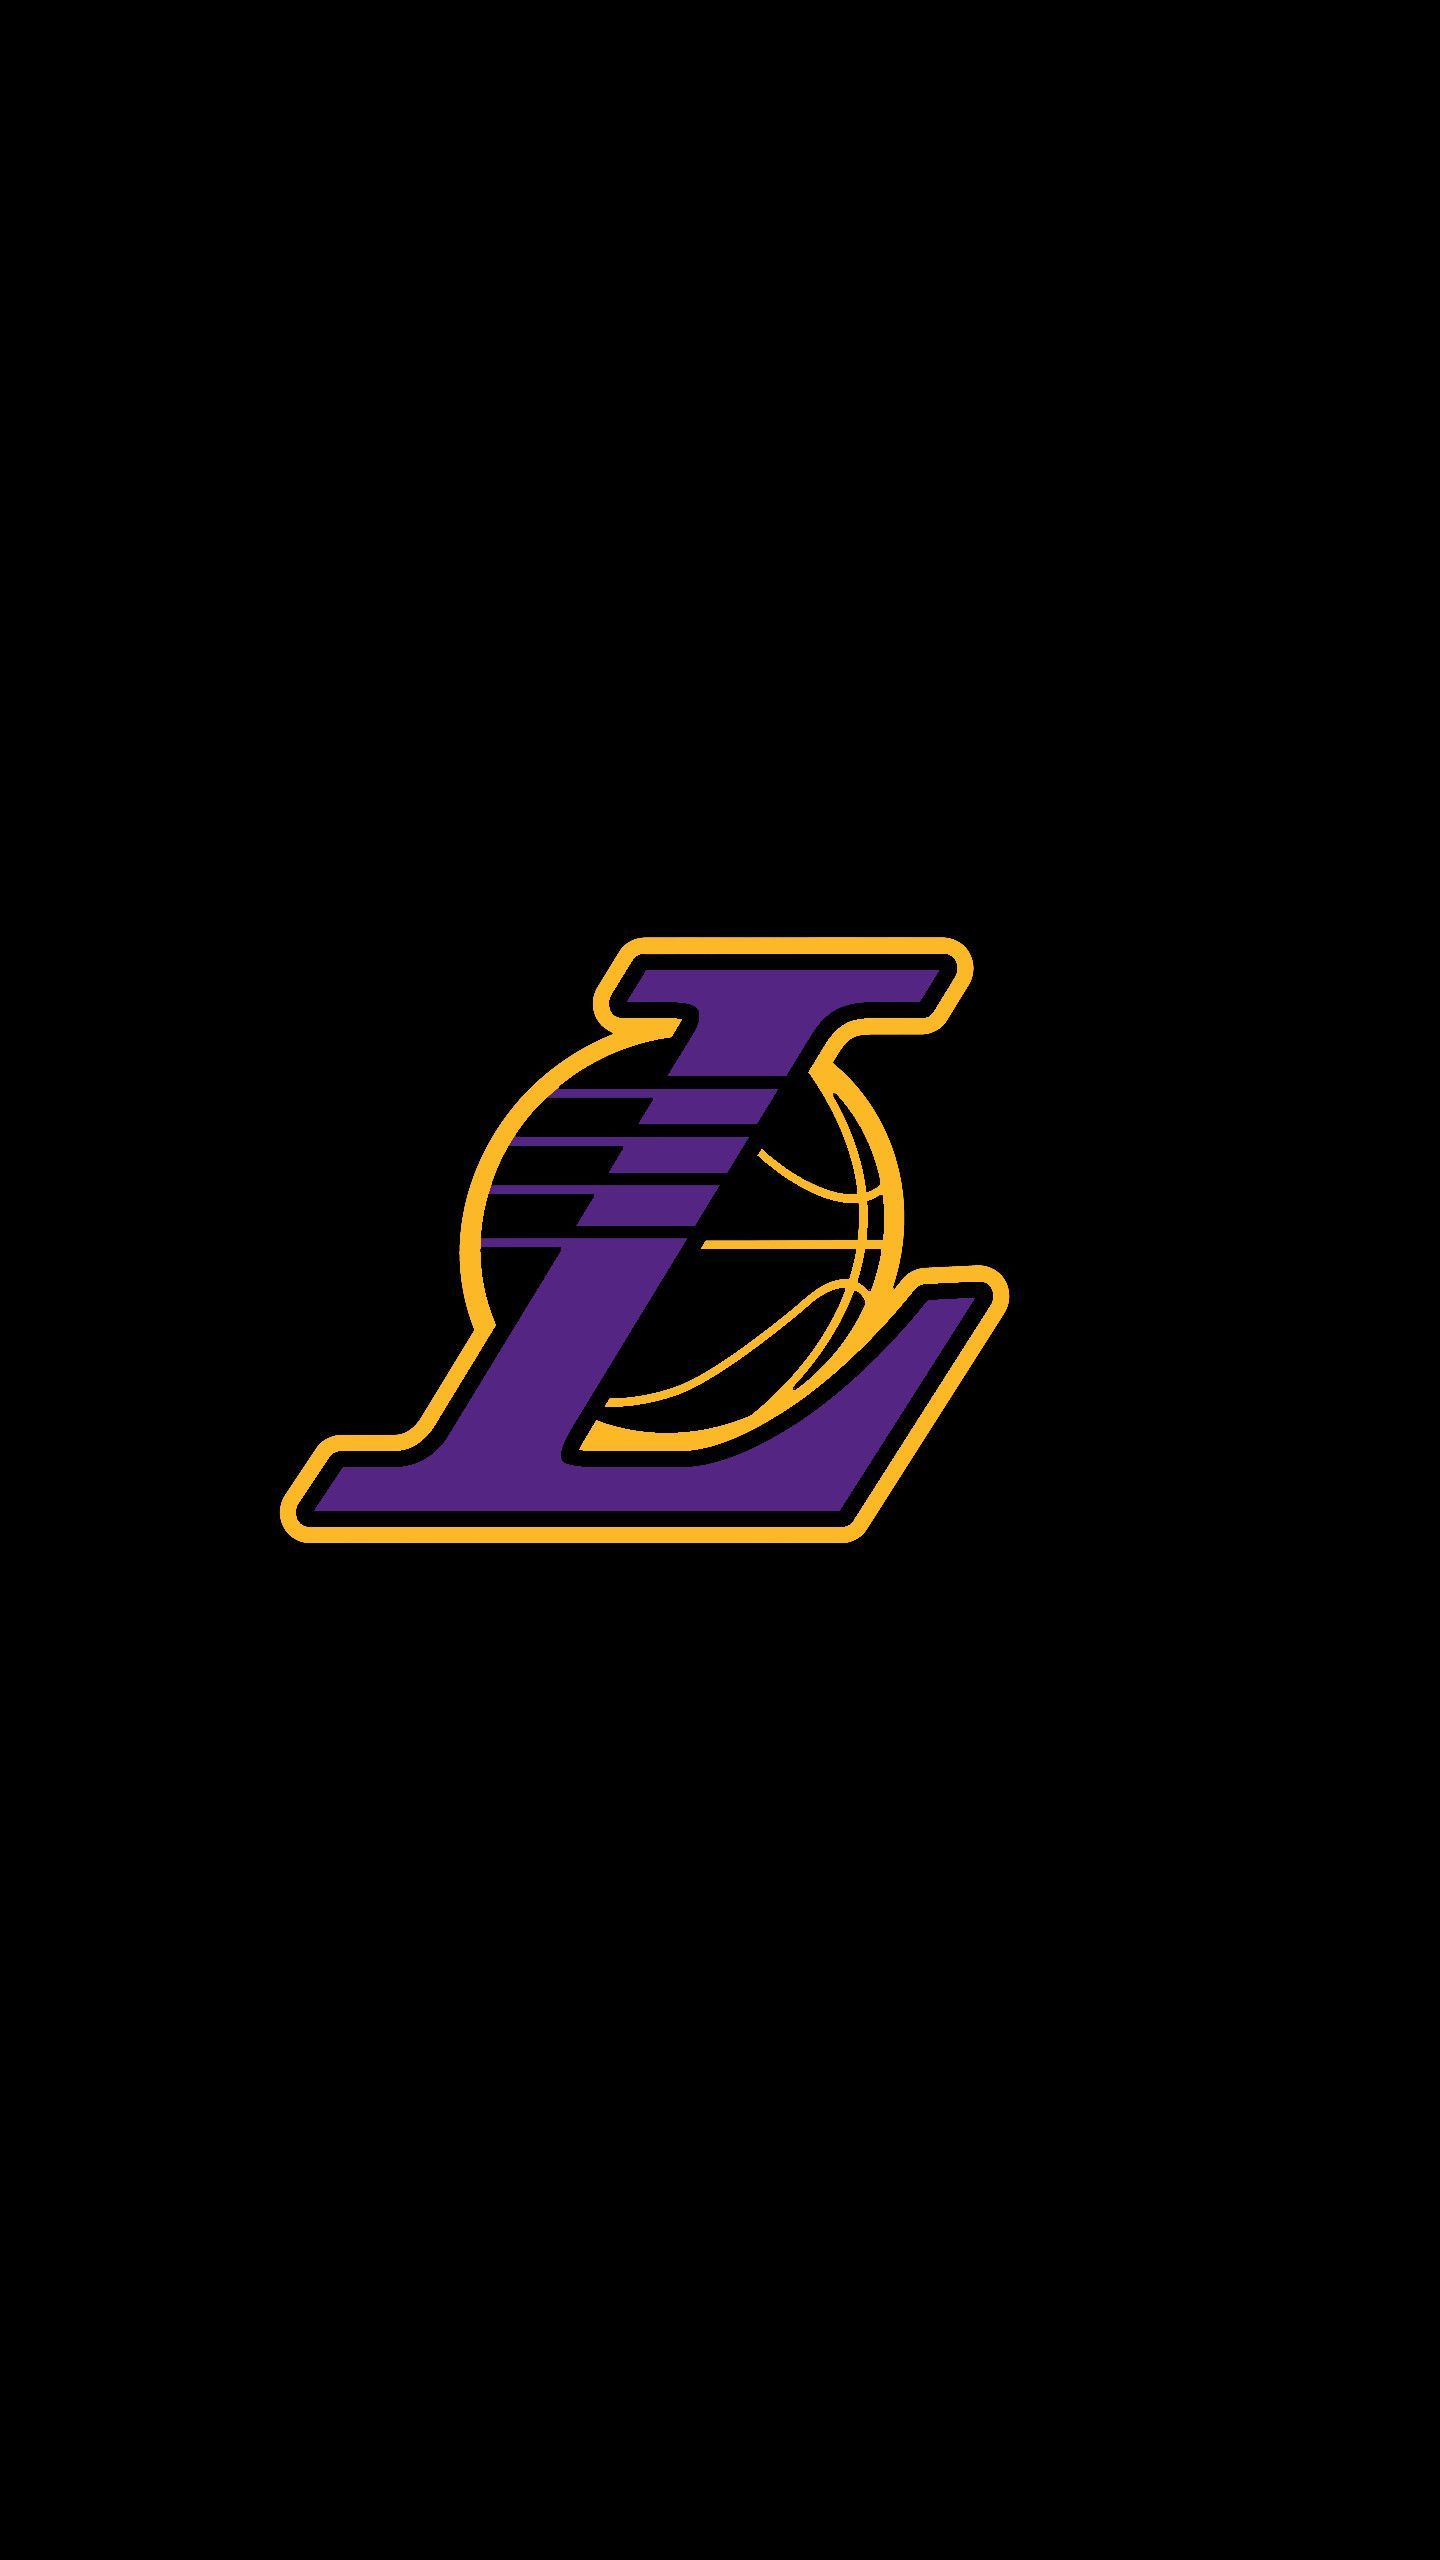 Pin By Maxine Eisen On Pinteres In 2020 Lakers Wallpaper Lakers Logo Lebron James Lakers